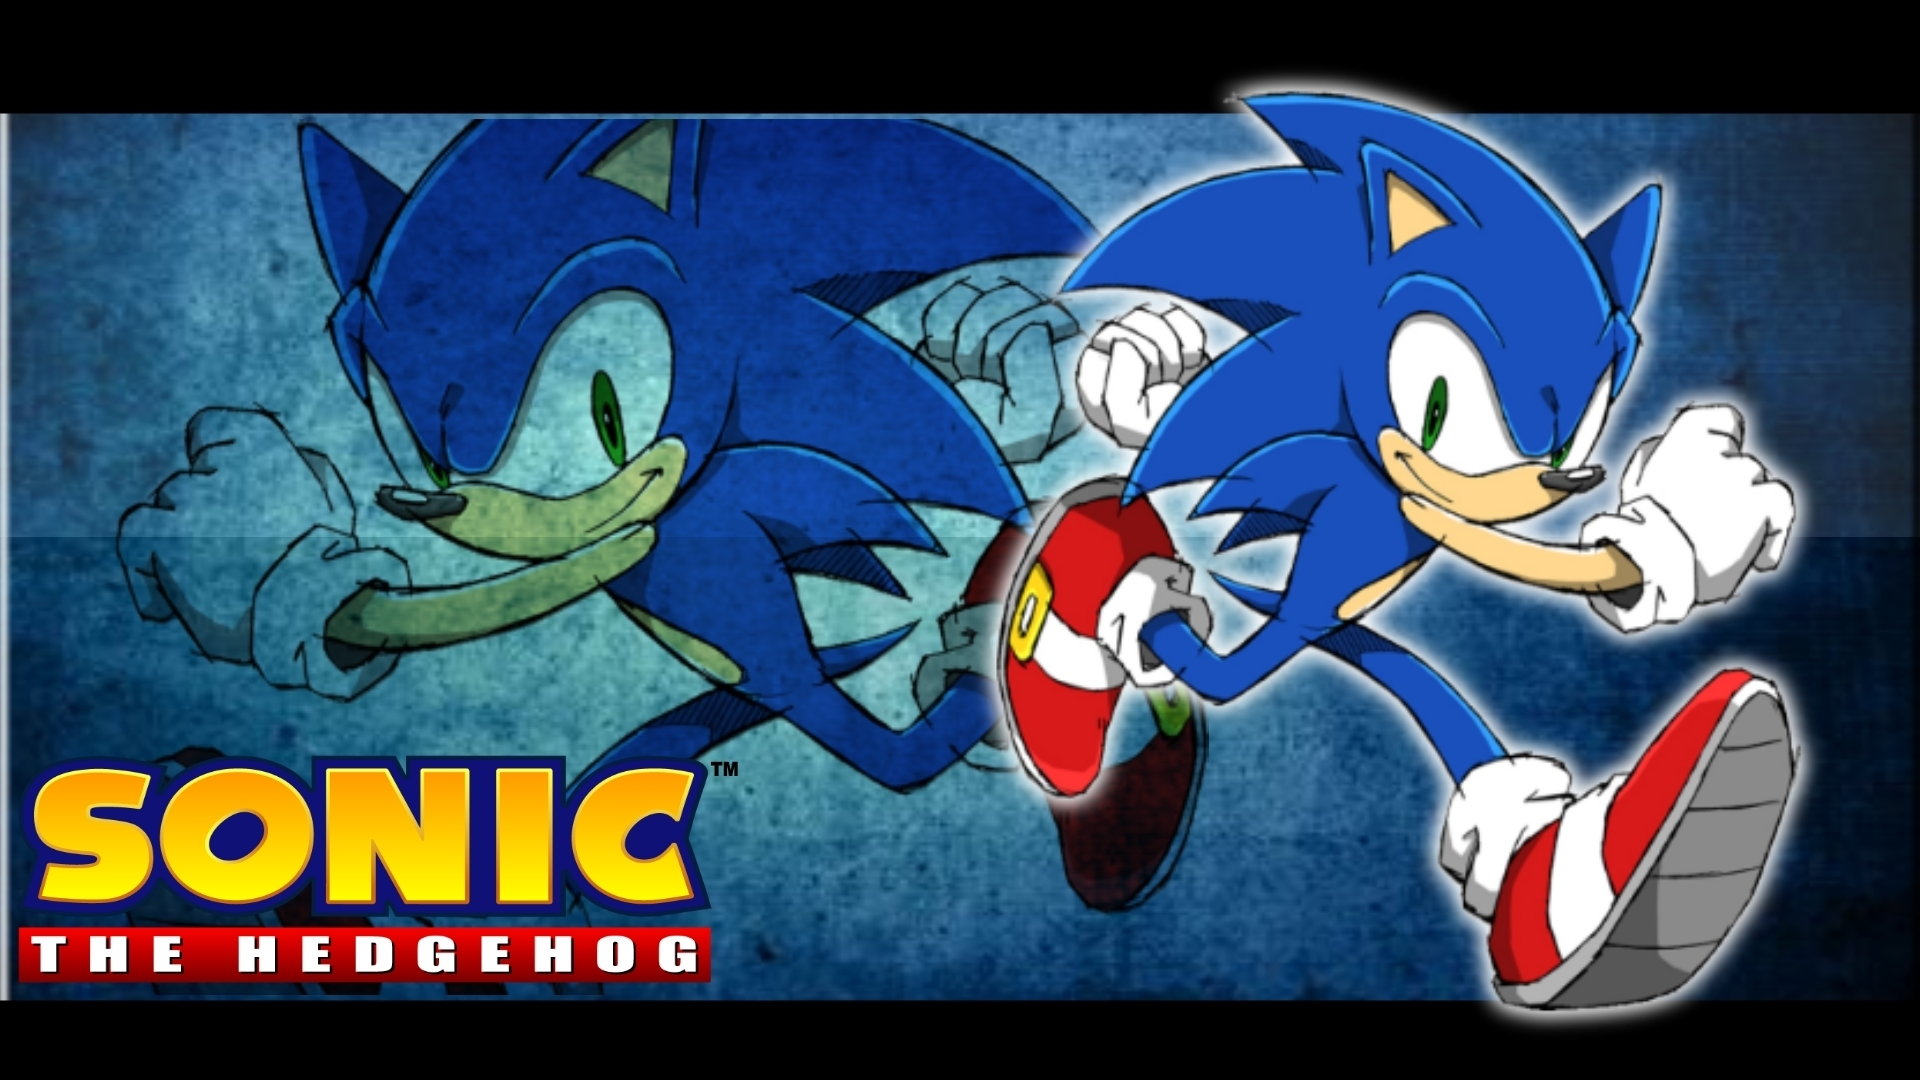 sonic the hedgehog wallpaper collections 7573 - amazing wallpaperz